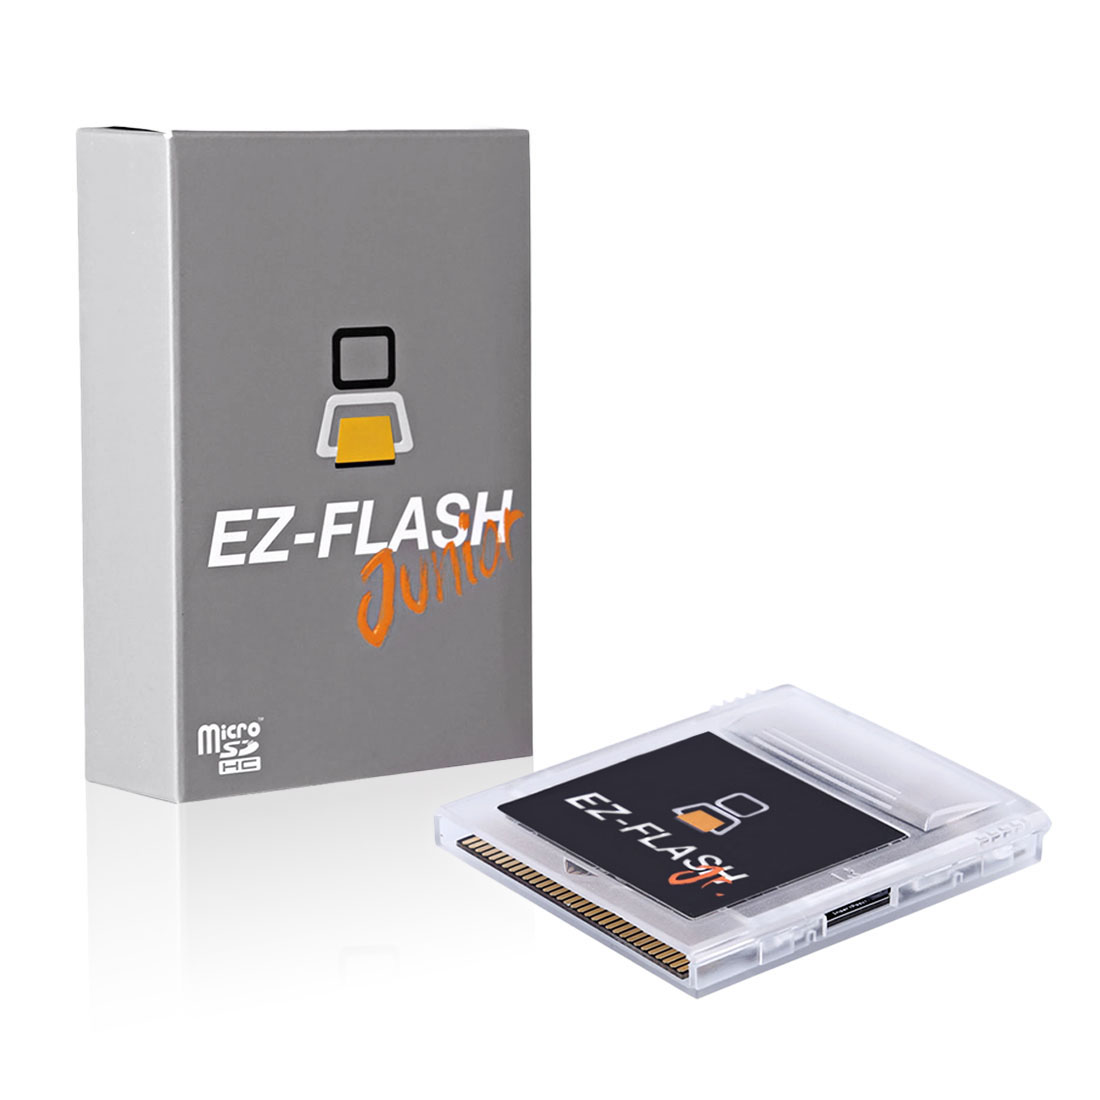 EZ-Flash Junior for Game Boy /Game Boy Pocket /Game Boy Color /Game Boy Advance /SP